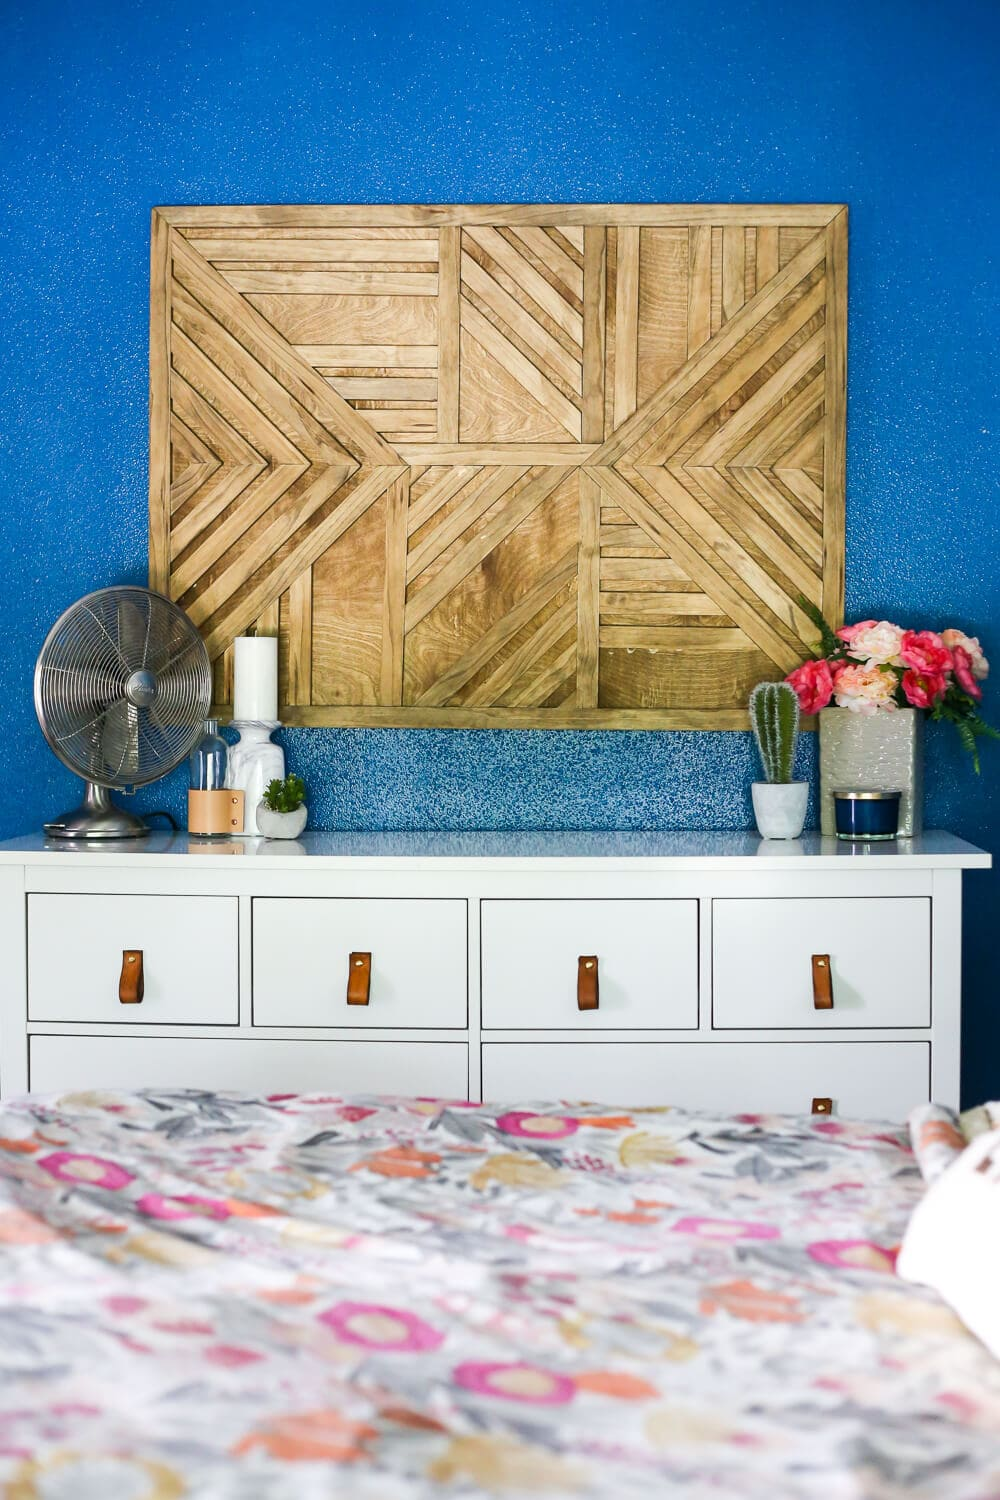 DIY Wood Wall Art - How to Make Your Own! // Love ...